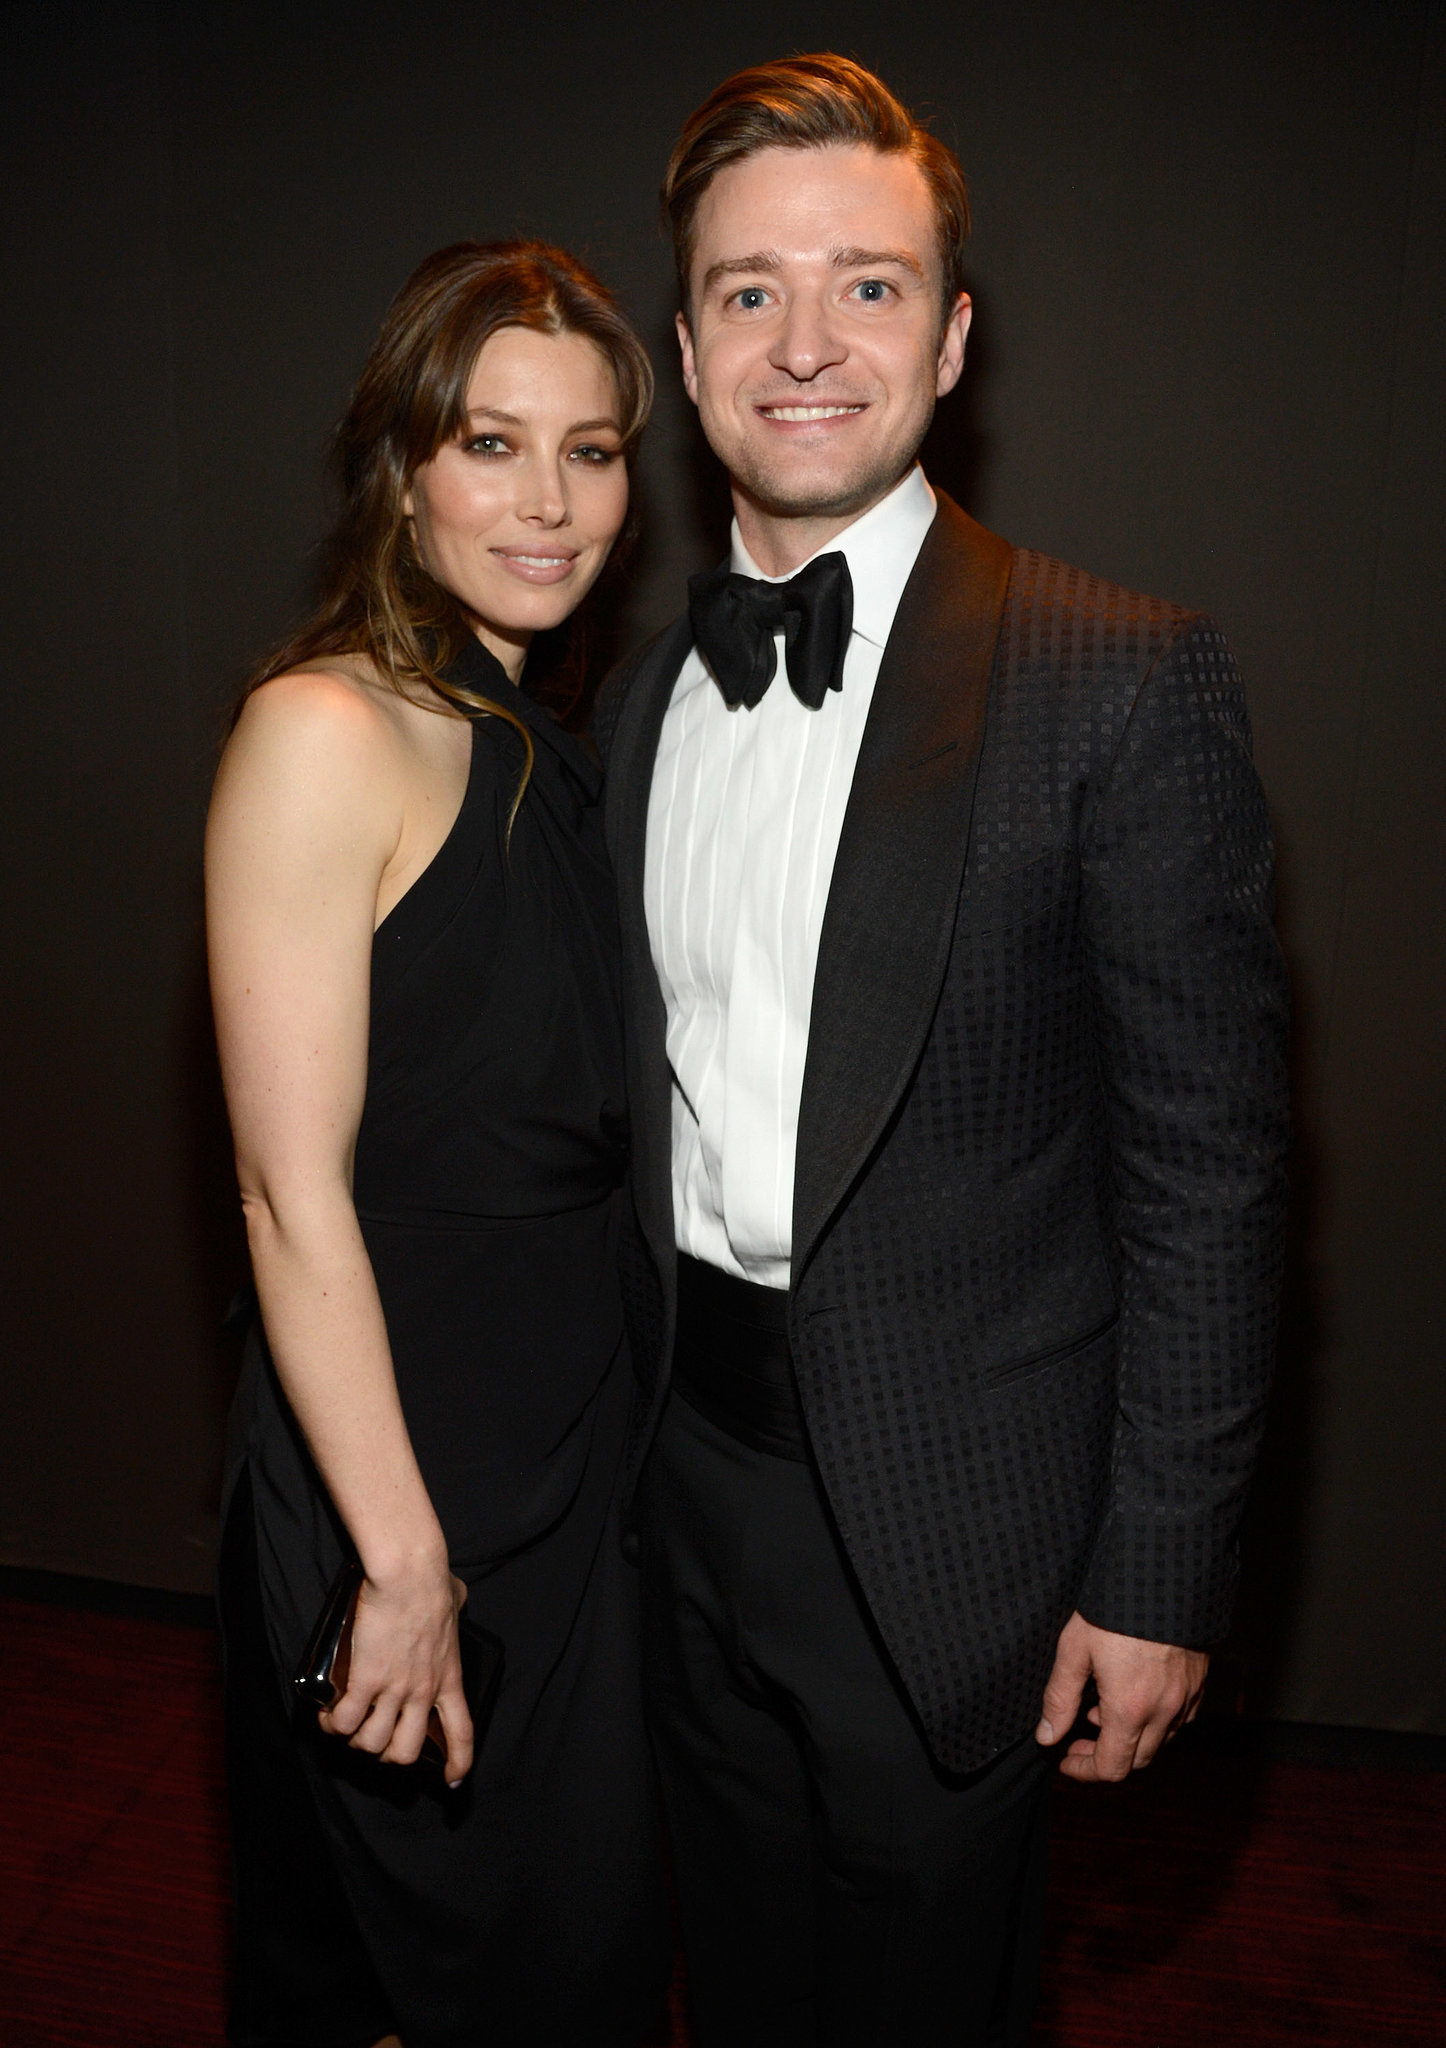 Justin and his wife, Jessica Biel, were all smiles at the Time 100 Gala in